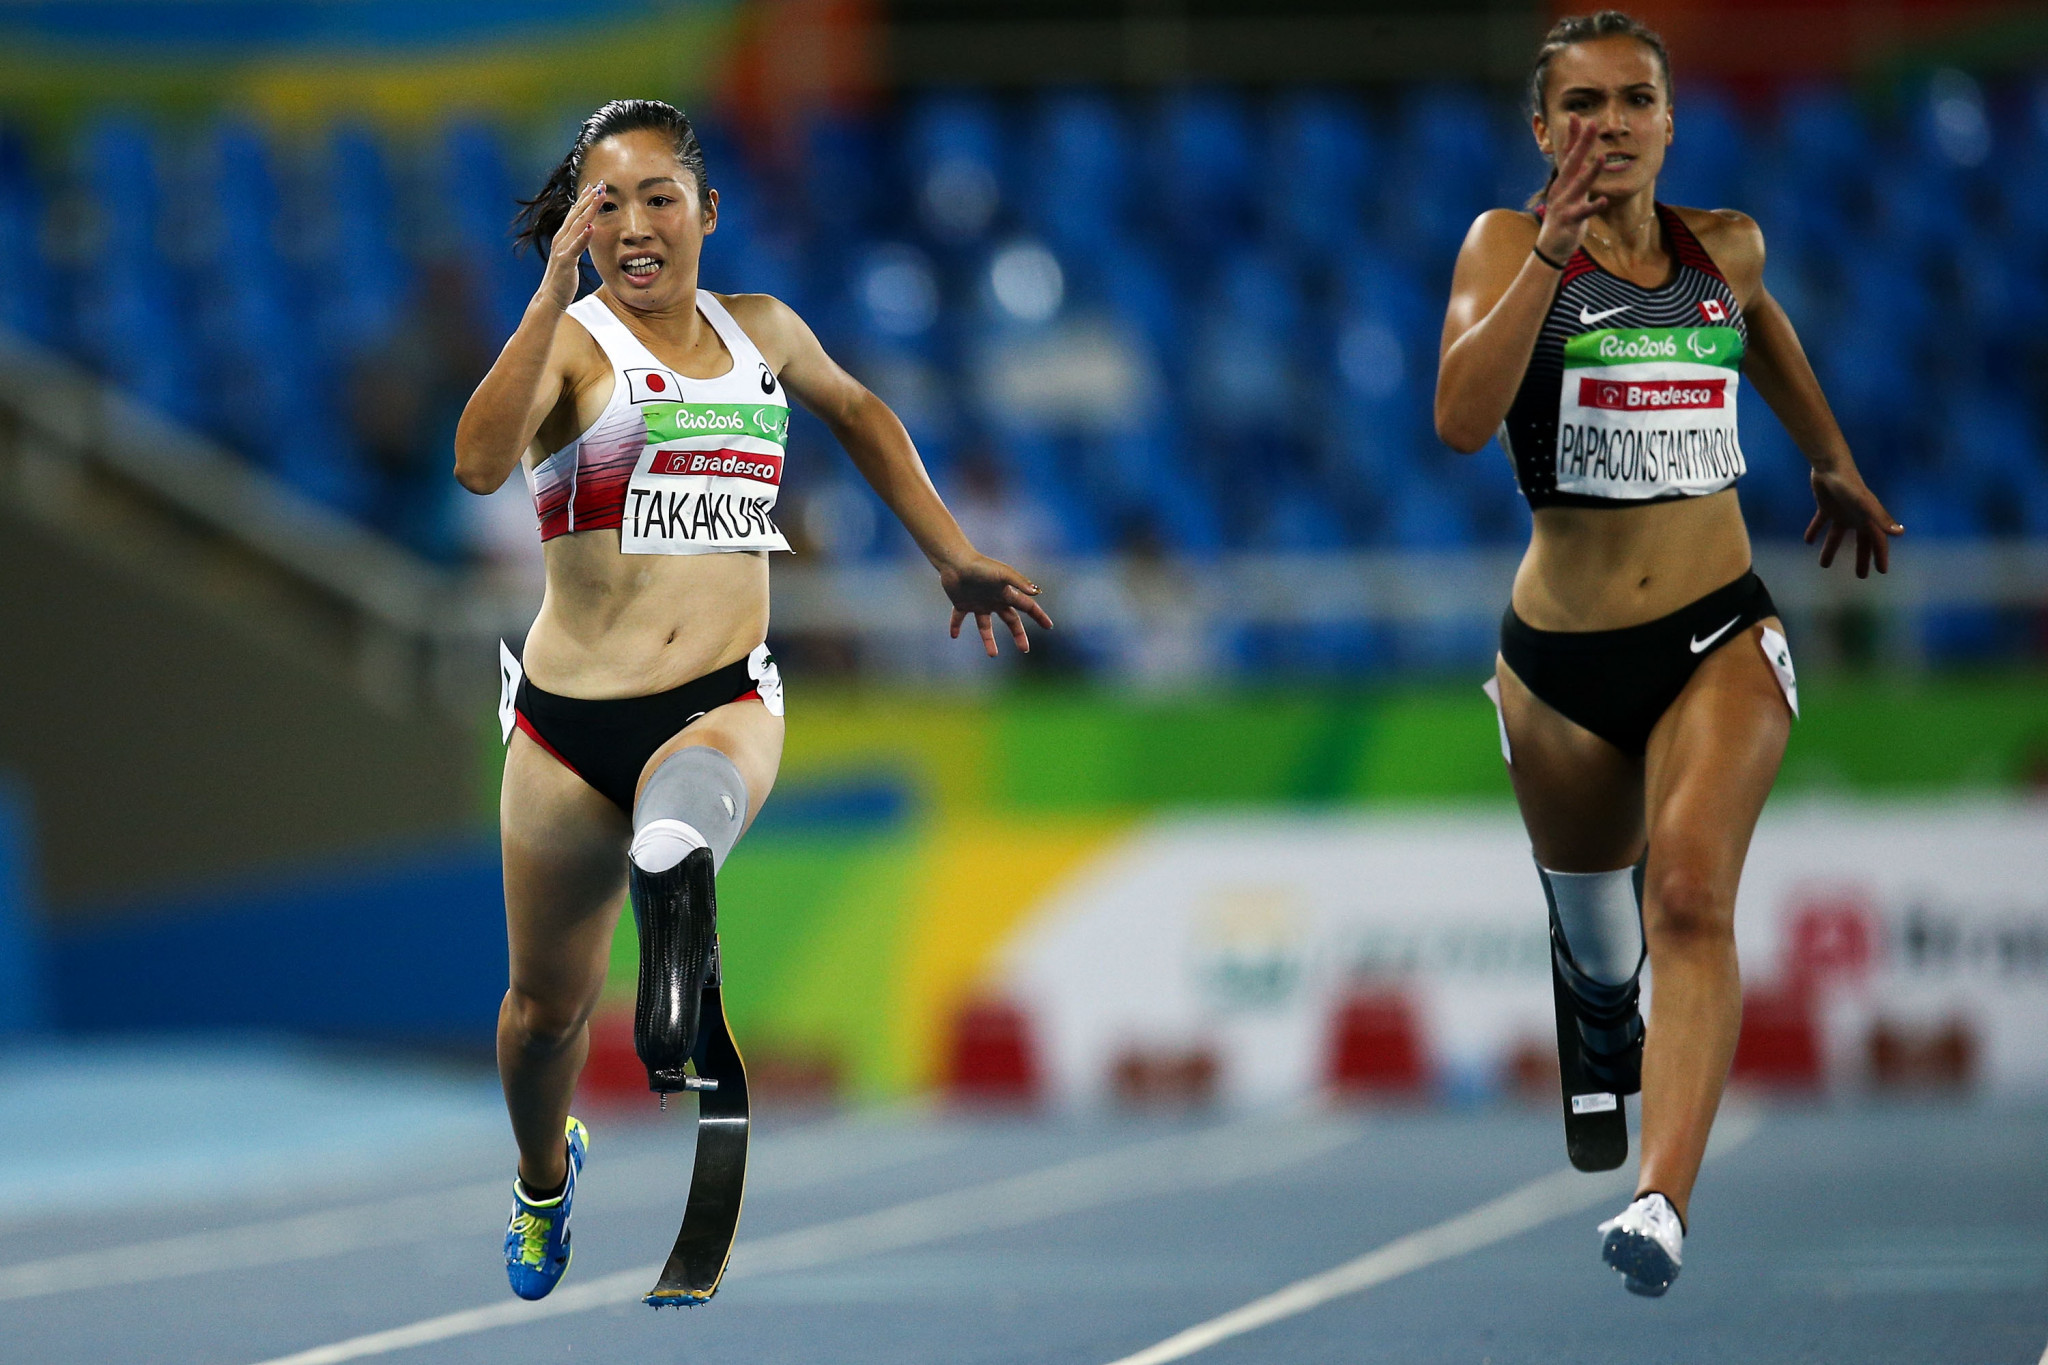 T64 100m sprinter Marissa Papaconstantinou is among the eight athletes named on Canada's team for Lima 2019 that have Paralympic Games experience ©Getty Images